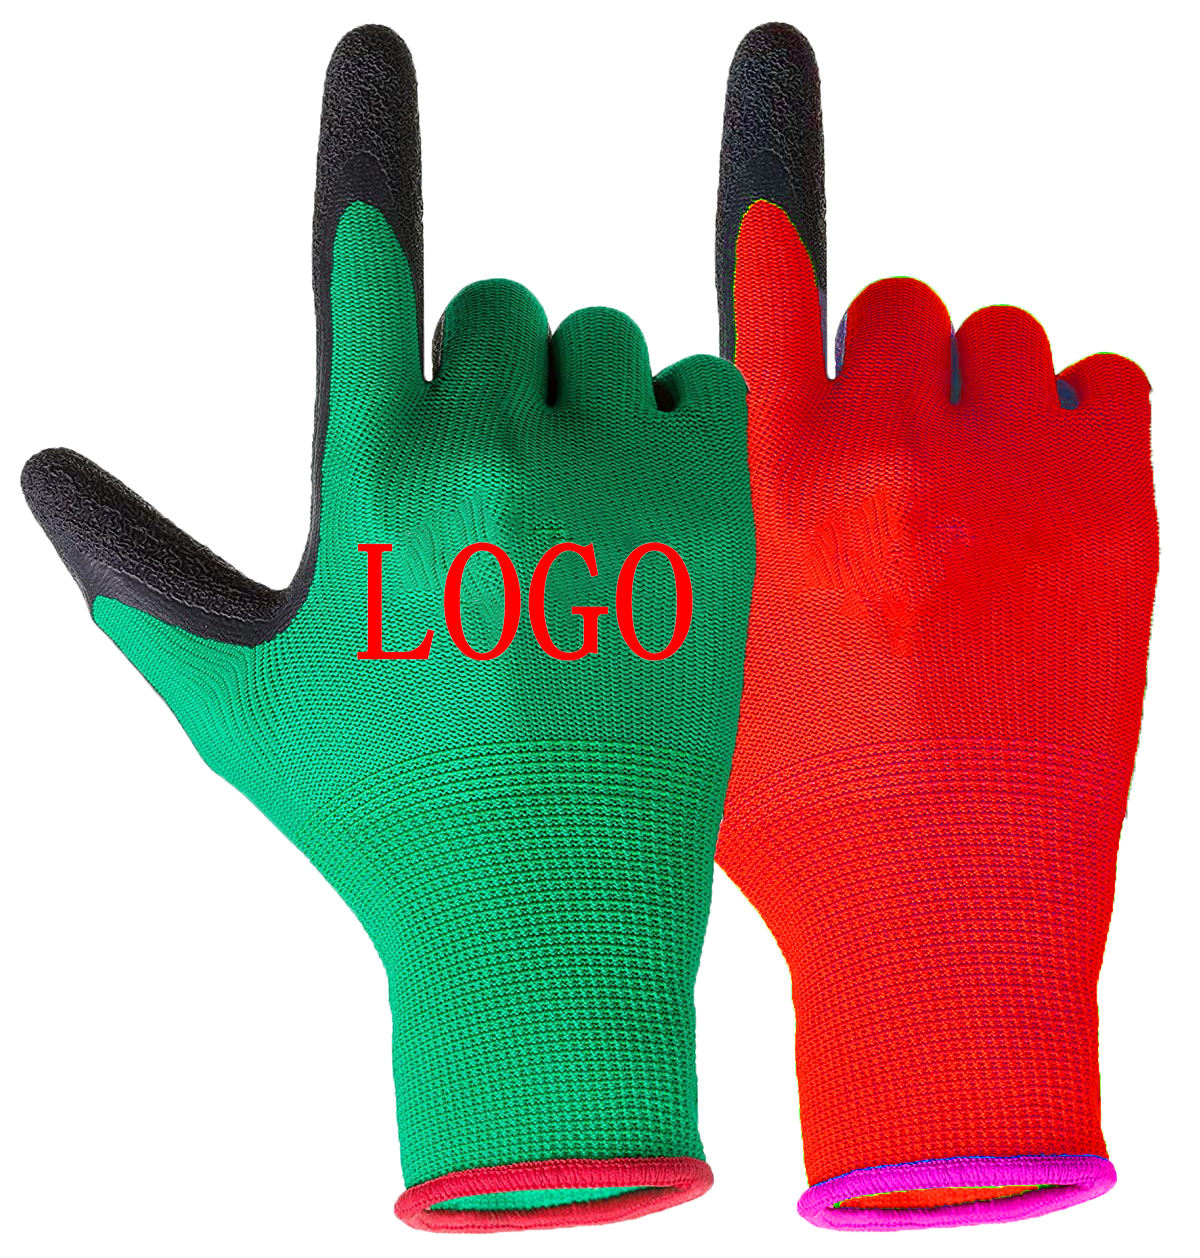 cheap custom logo latex hand gloves industrial work safety gloves easy grip latex black red for construction garden